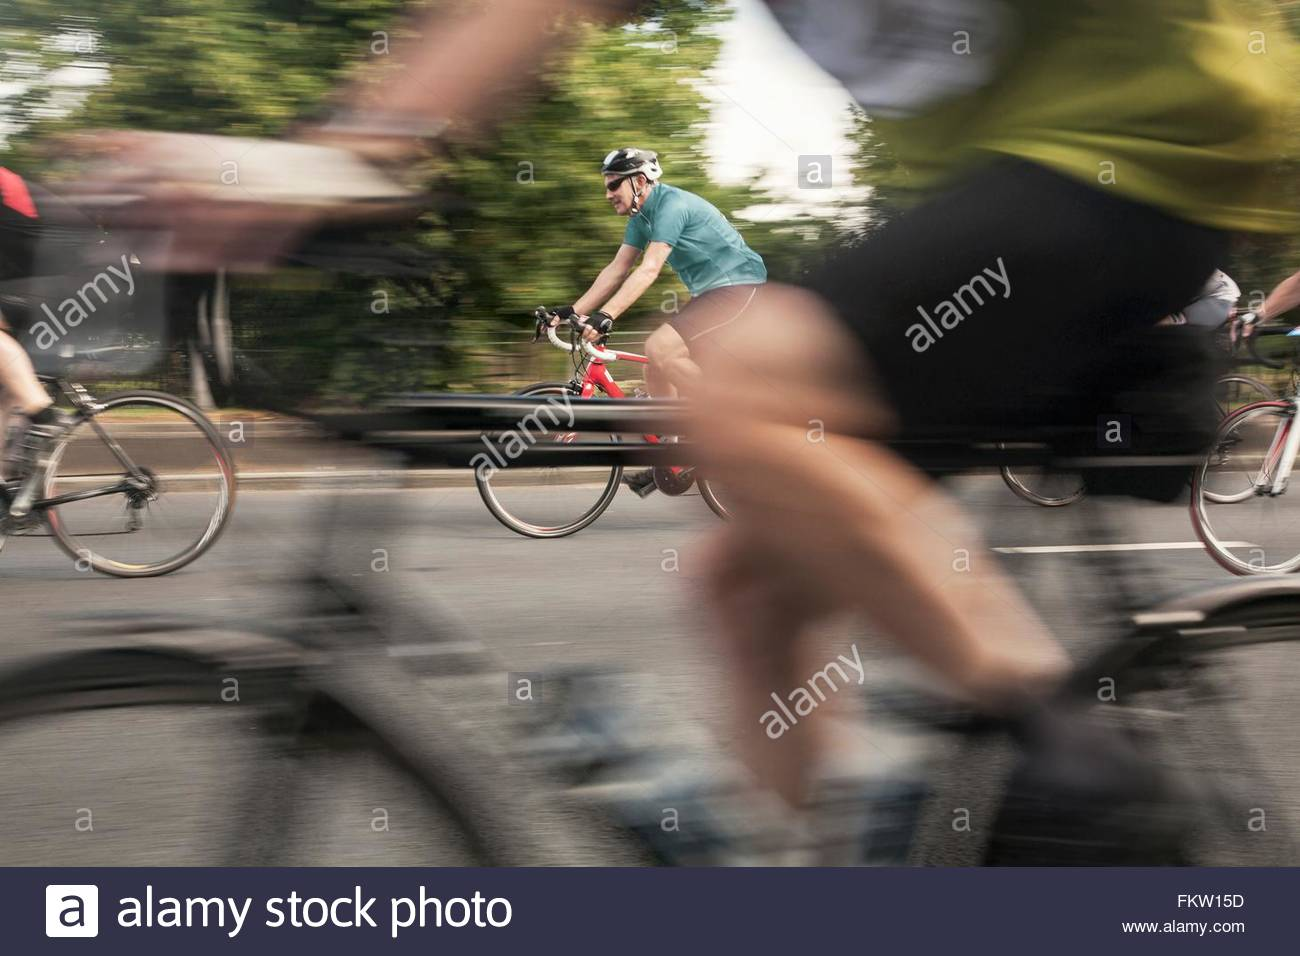 Close up of racing cyclists speeding on urban road in racing cycle race Stock Photo